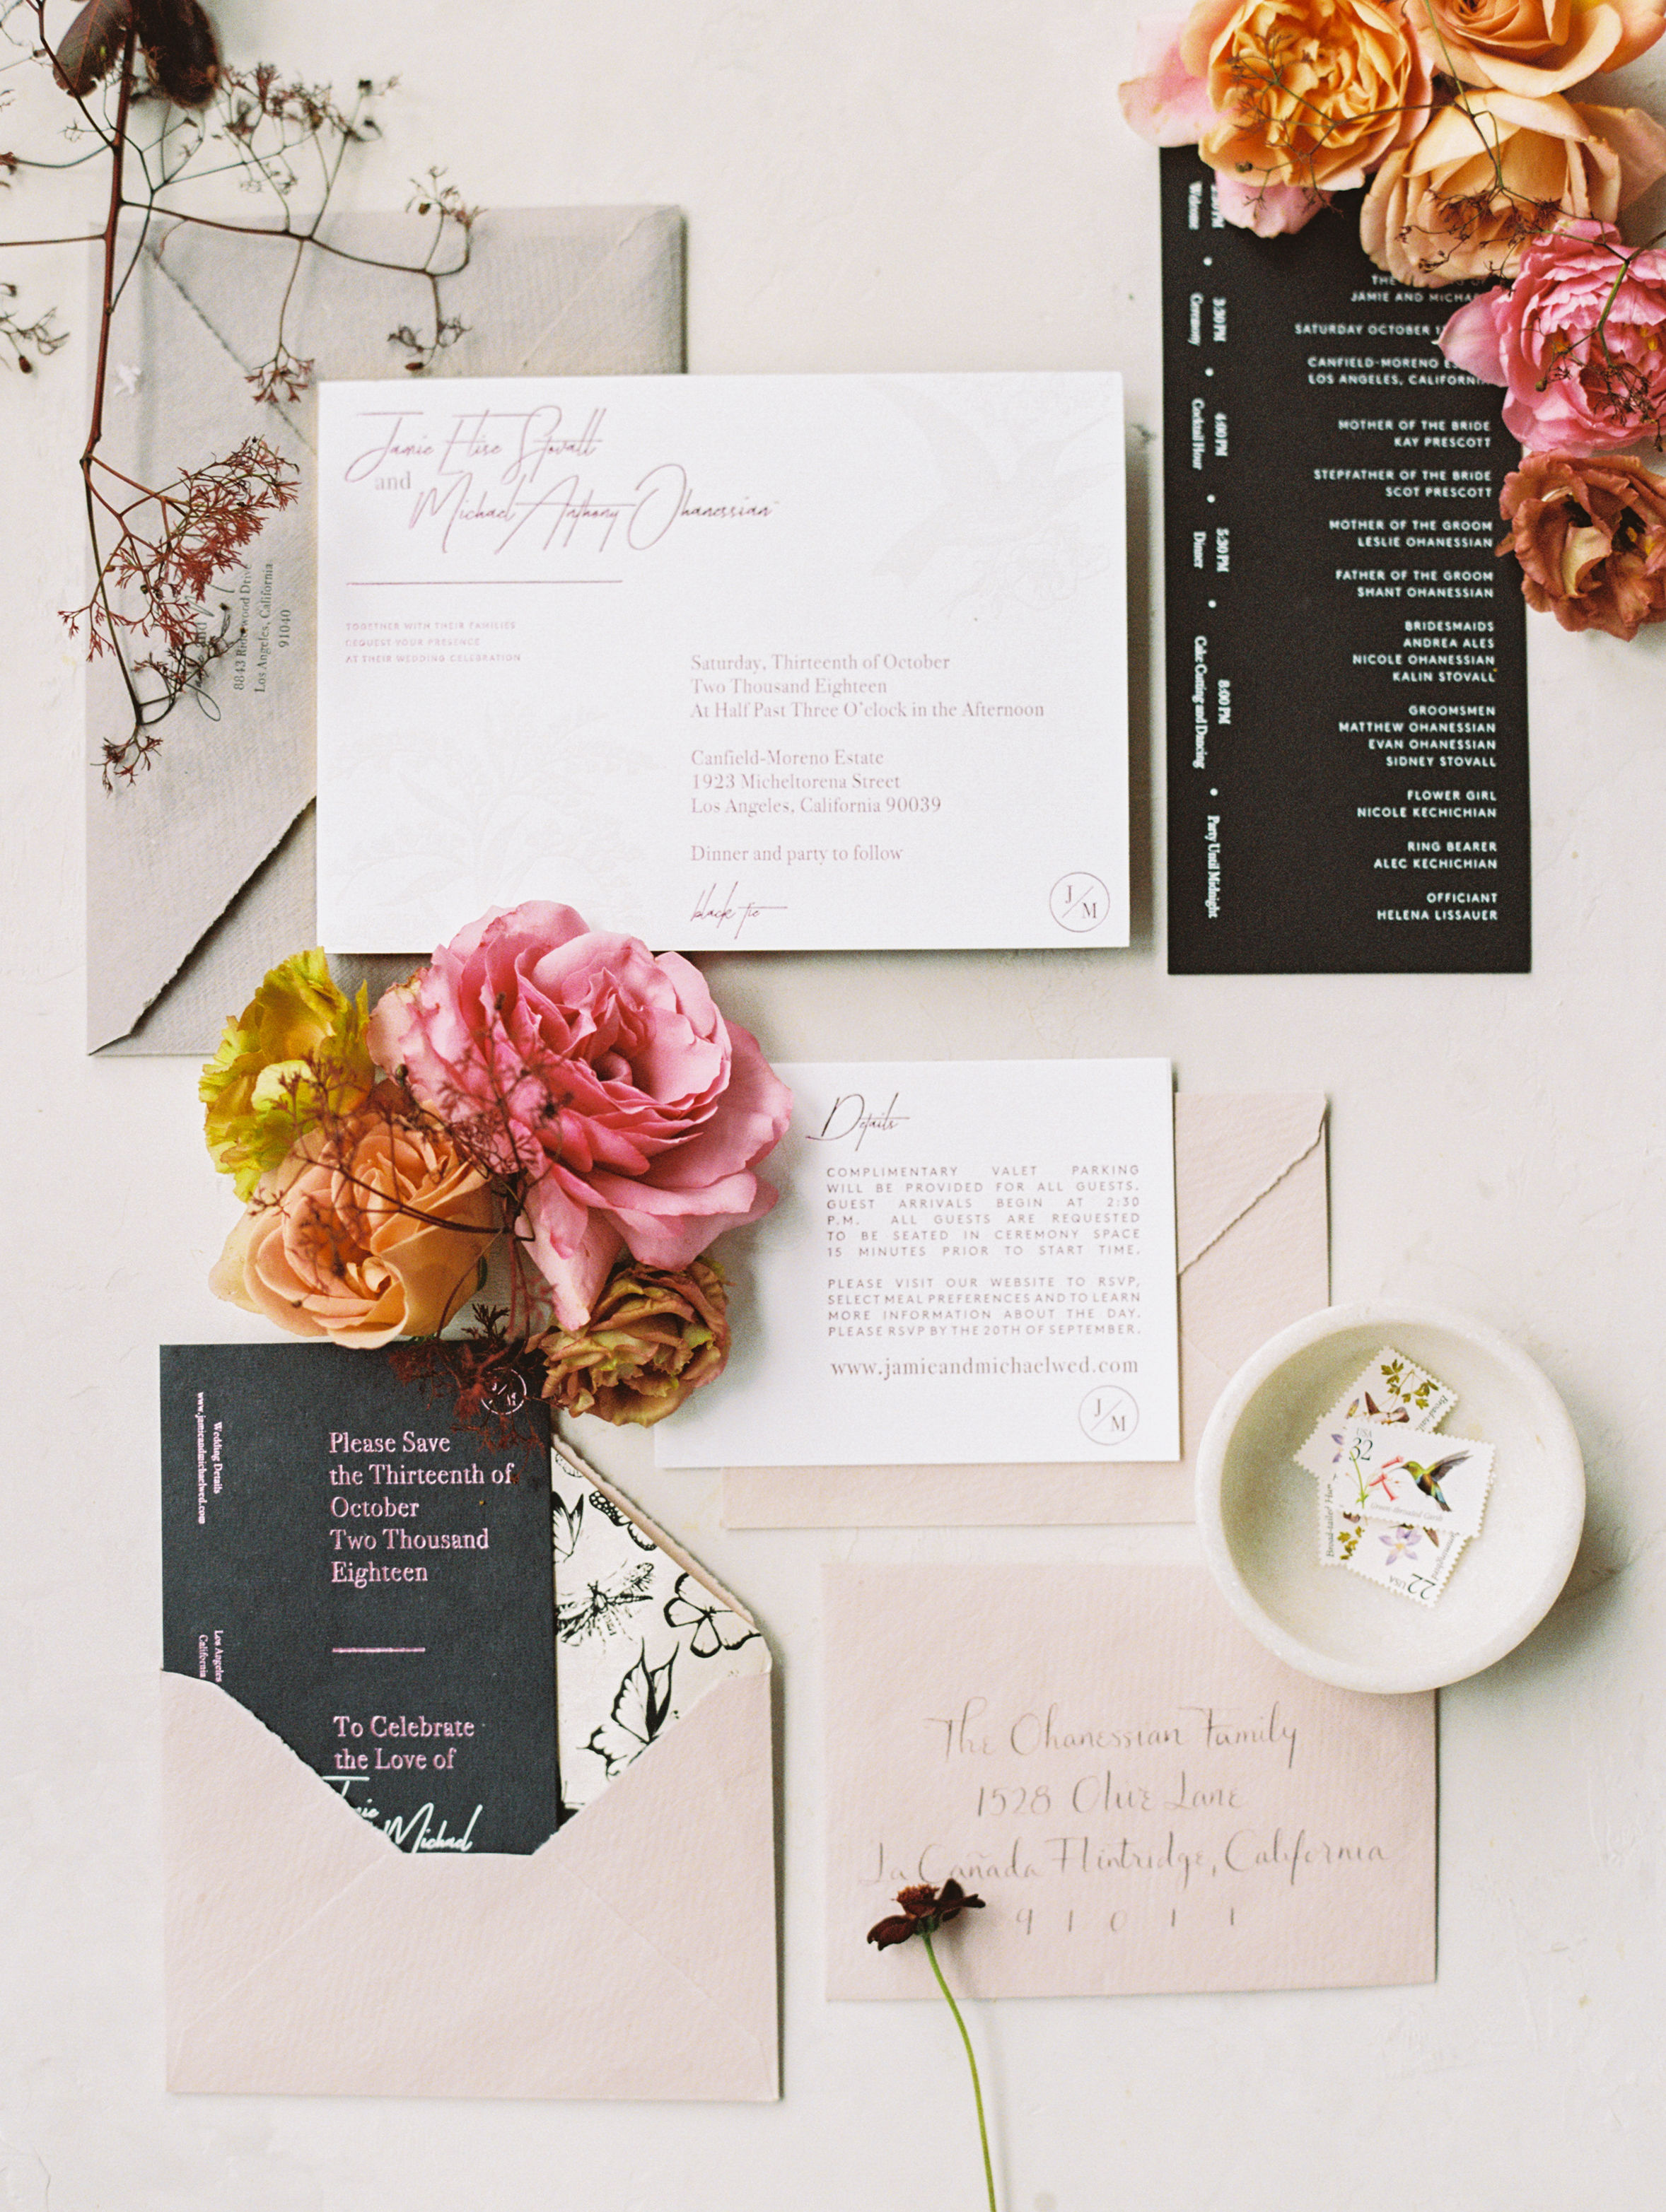 How to Choose the Right Font for Your Wedding Invitations